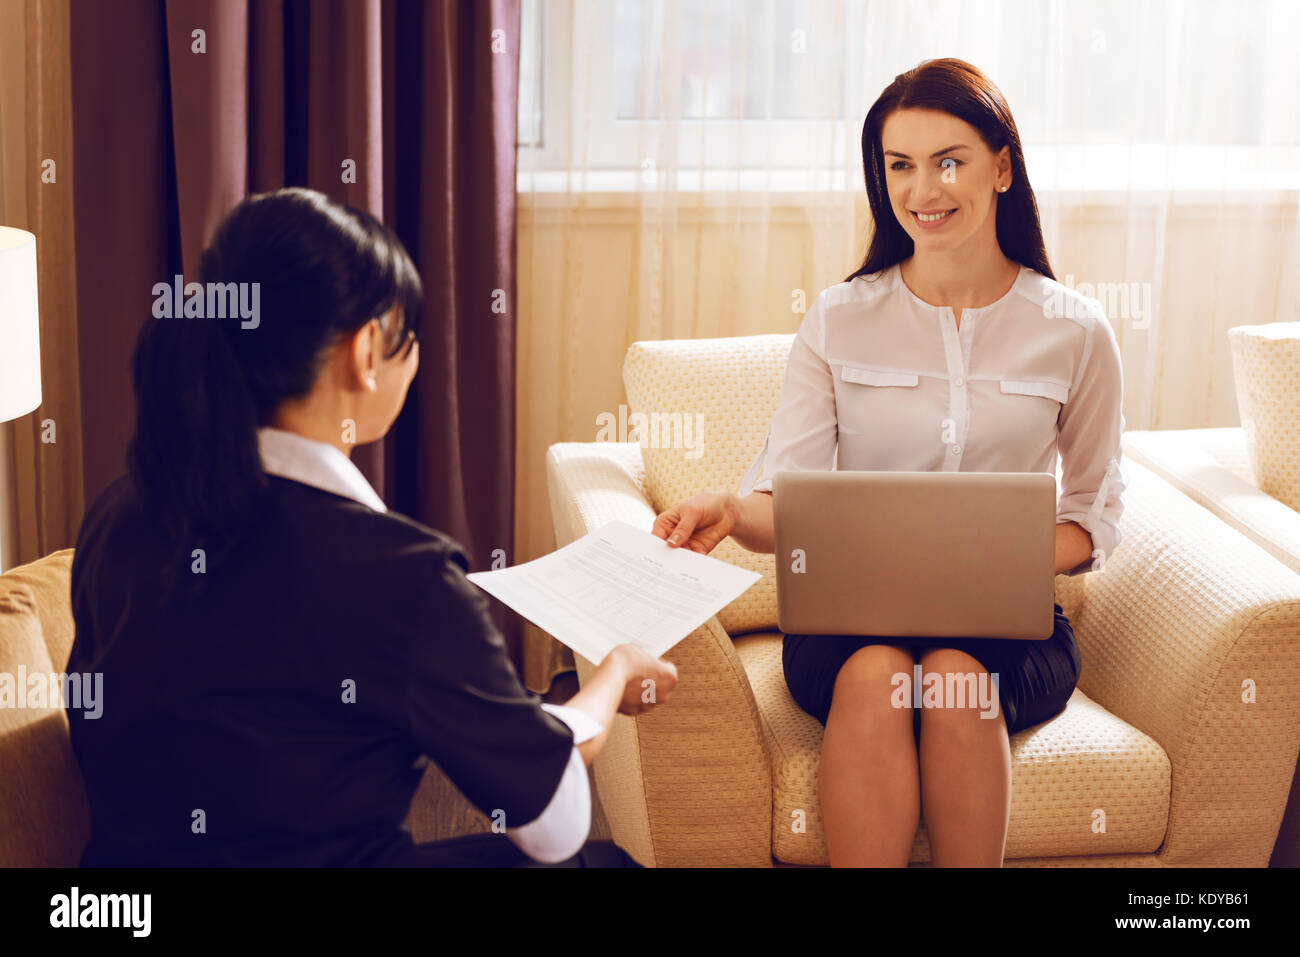 Cheerful female giving document to her helper - Stock Image